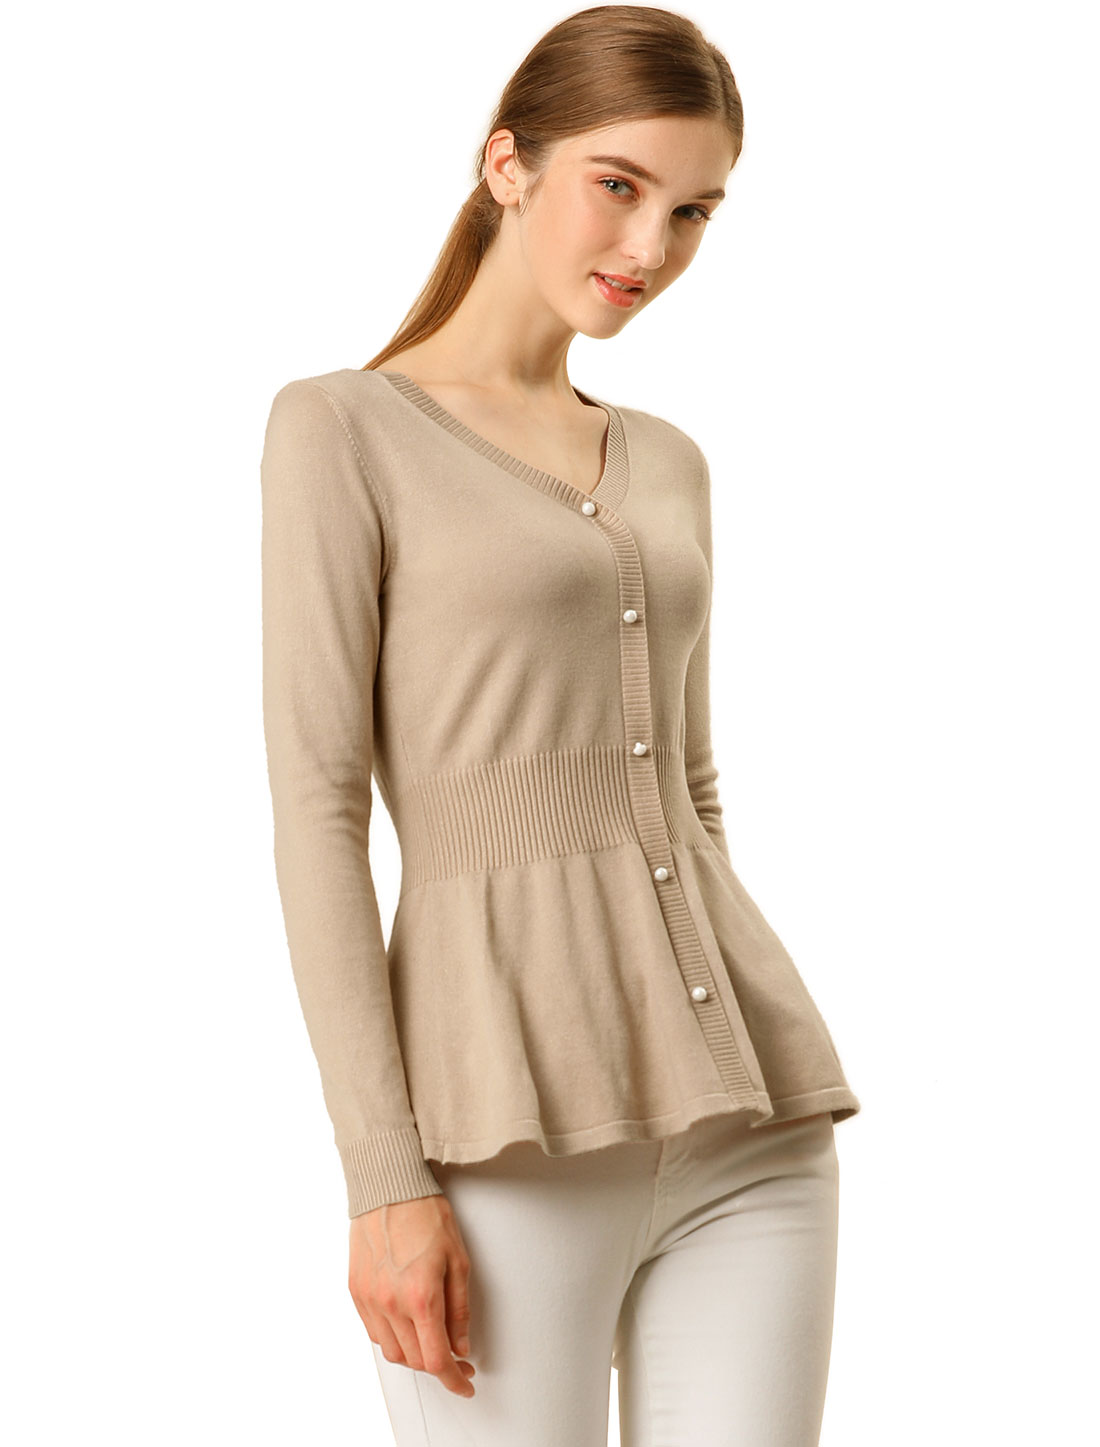 Women's Peplum Sweater Smocked Long Sleeve Knit Tops Dark Beige M